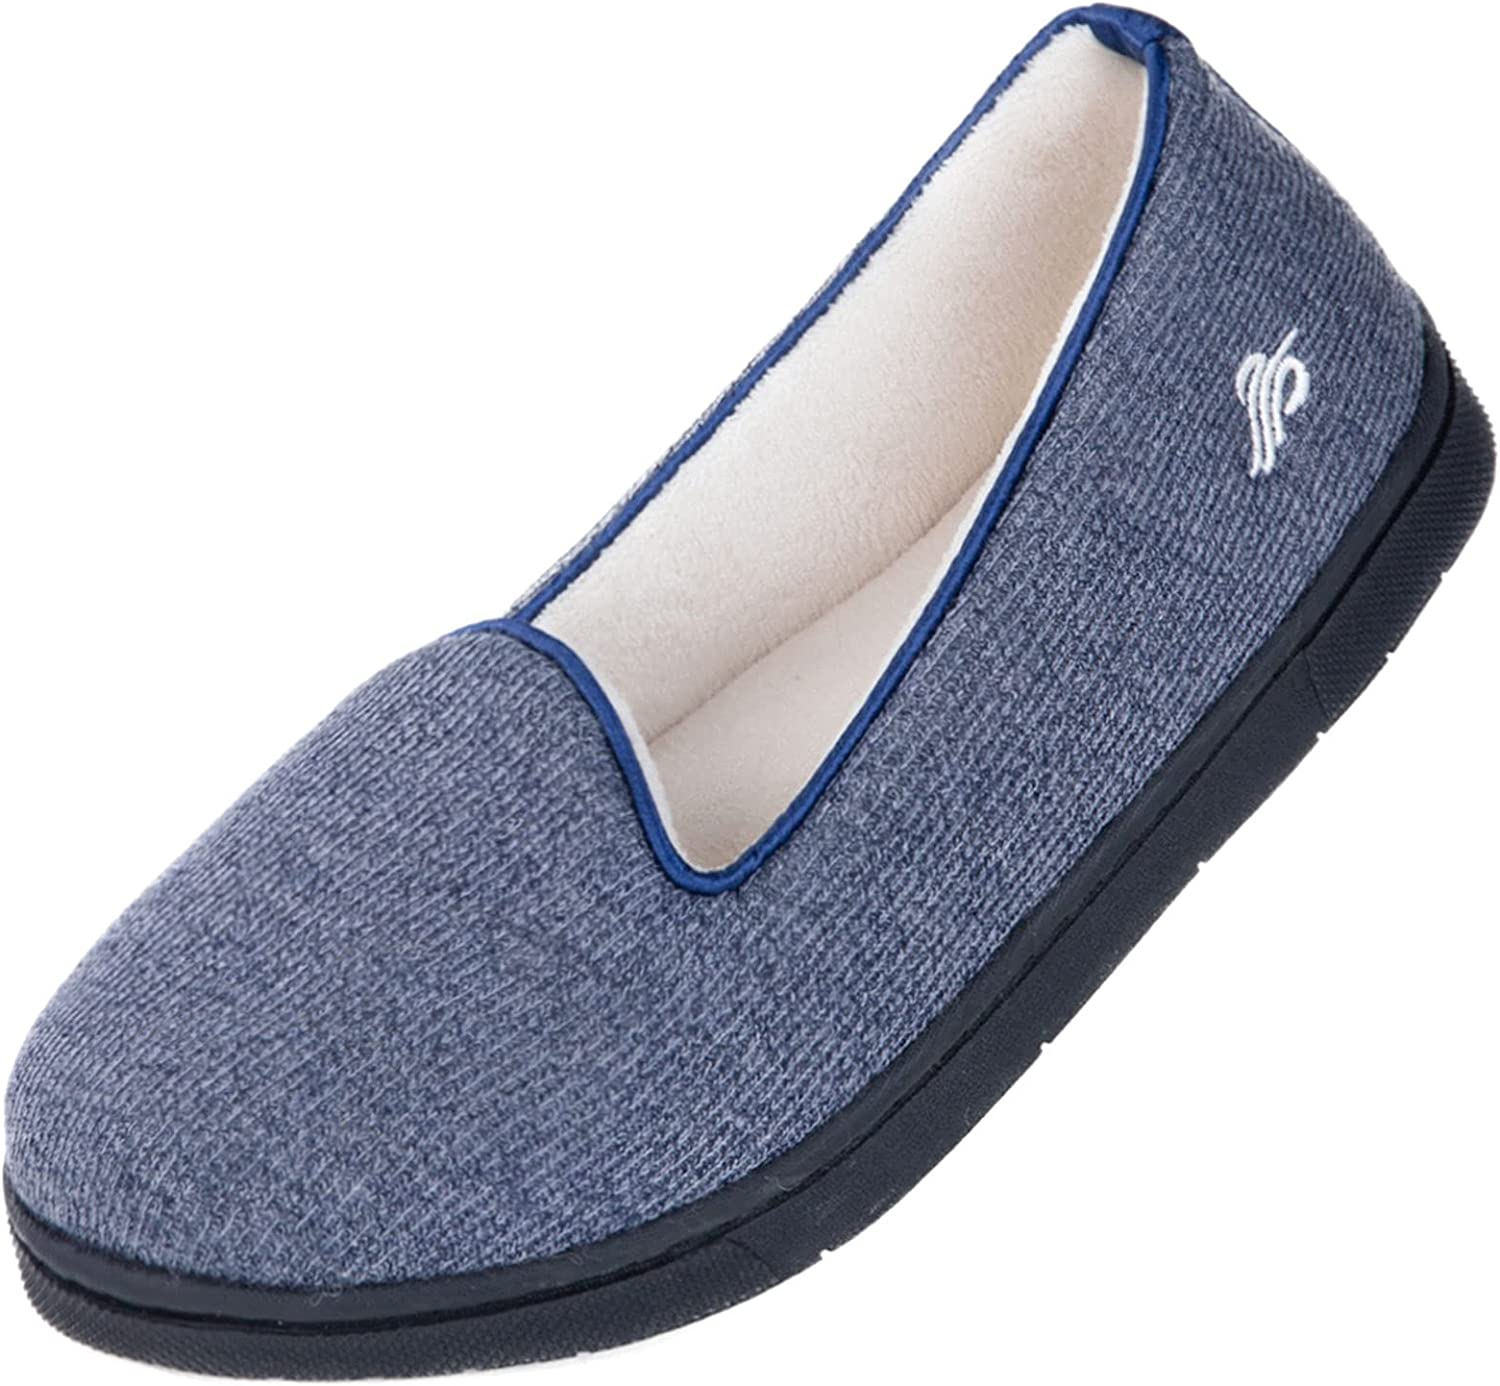 Wishcotton Womens Cozy Light House Slippers, Memory Foam House Shoes with Closed Back, Non slip Rubber Sole Indoor Outdoor